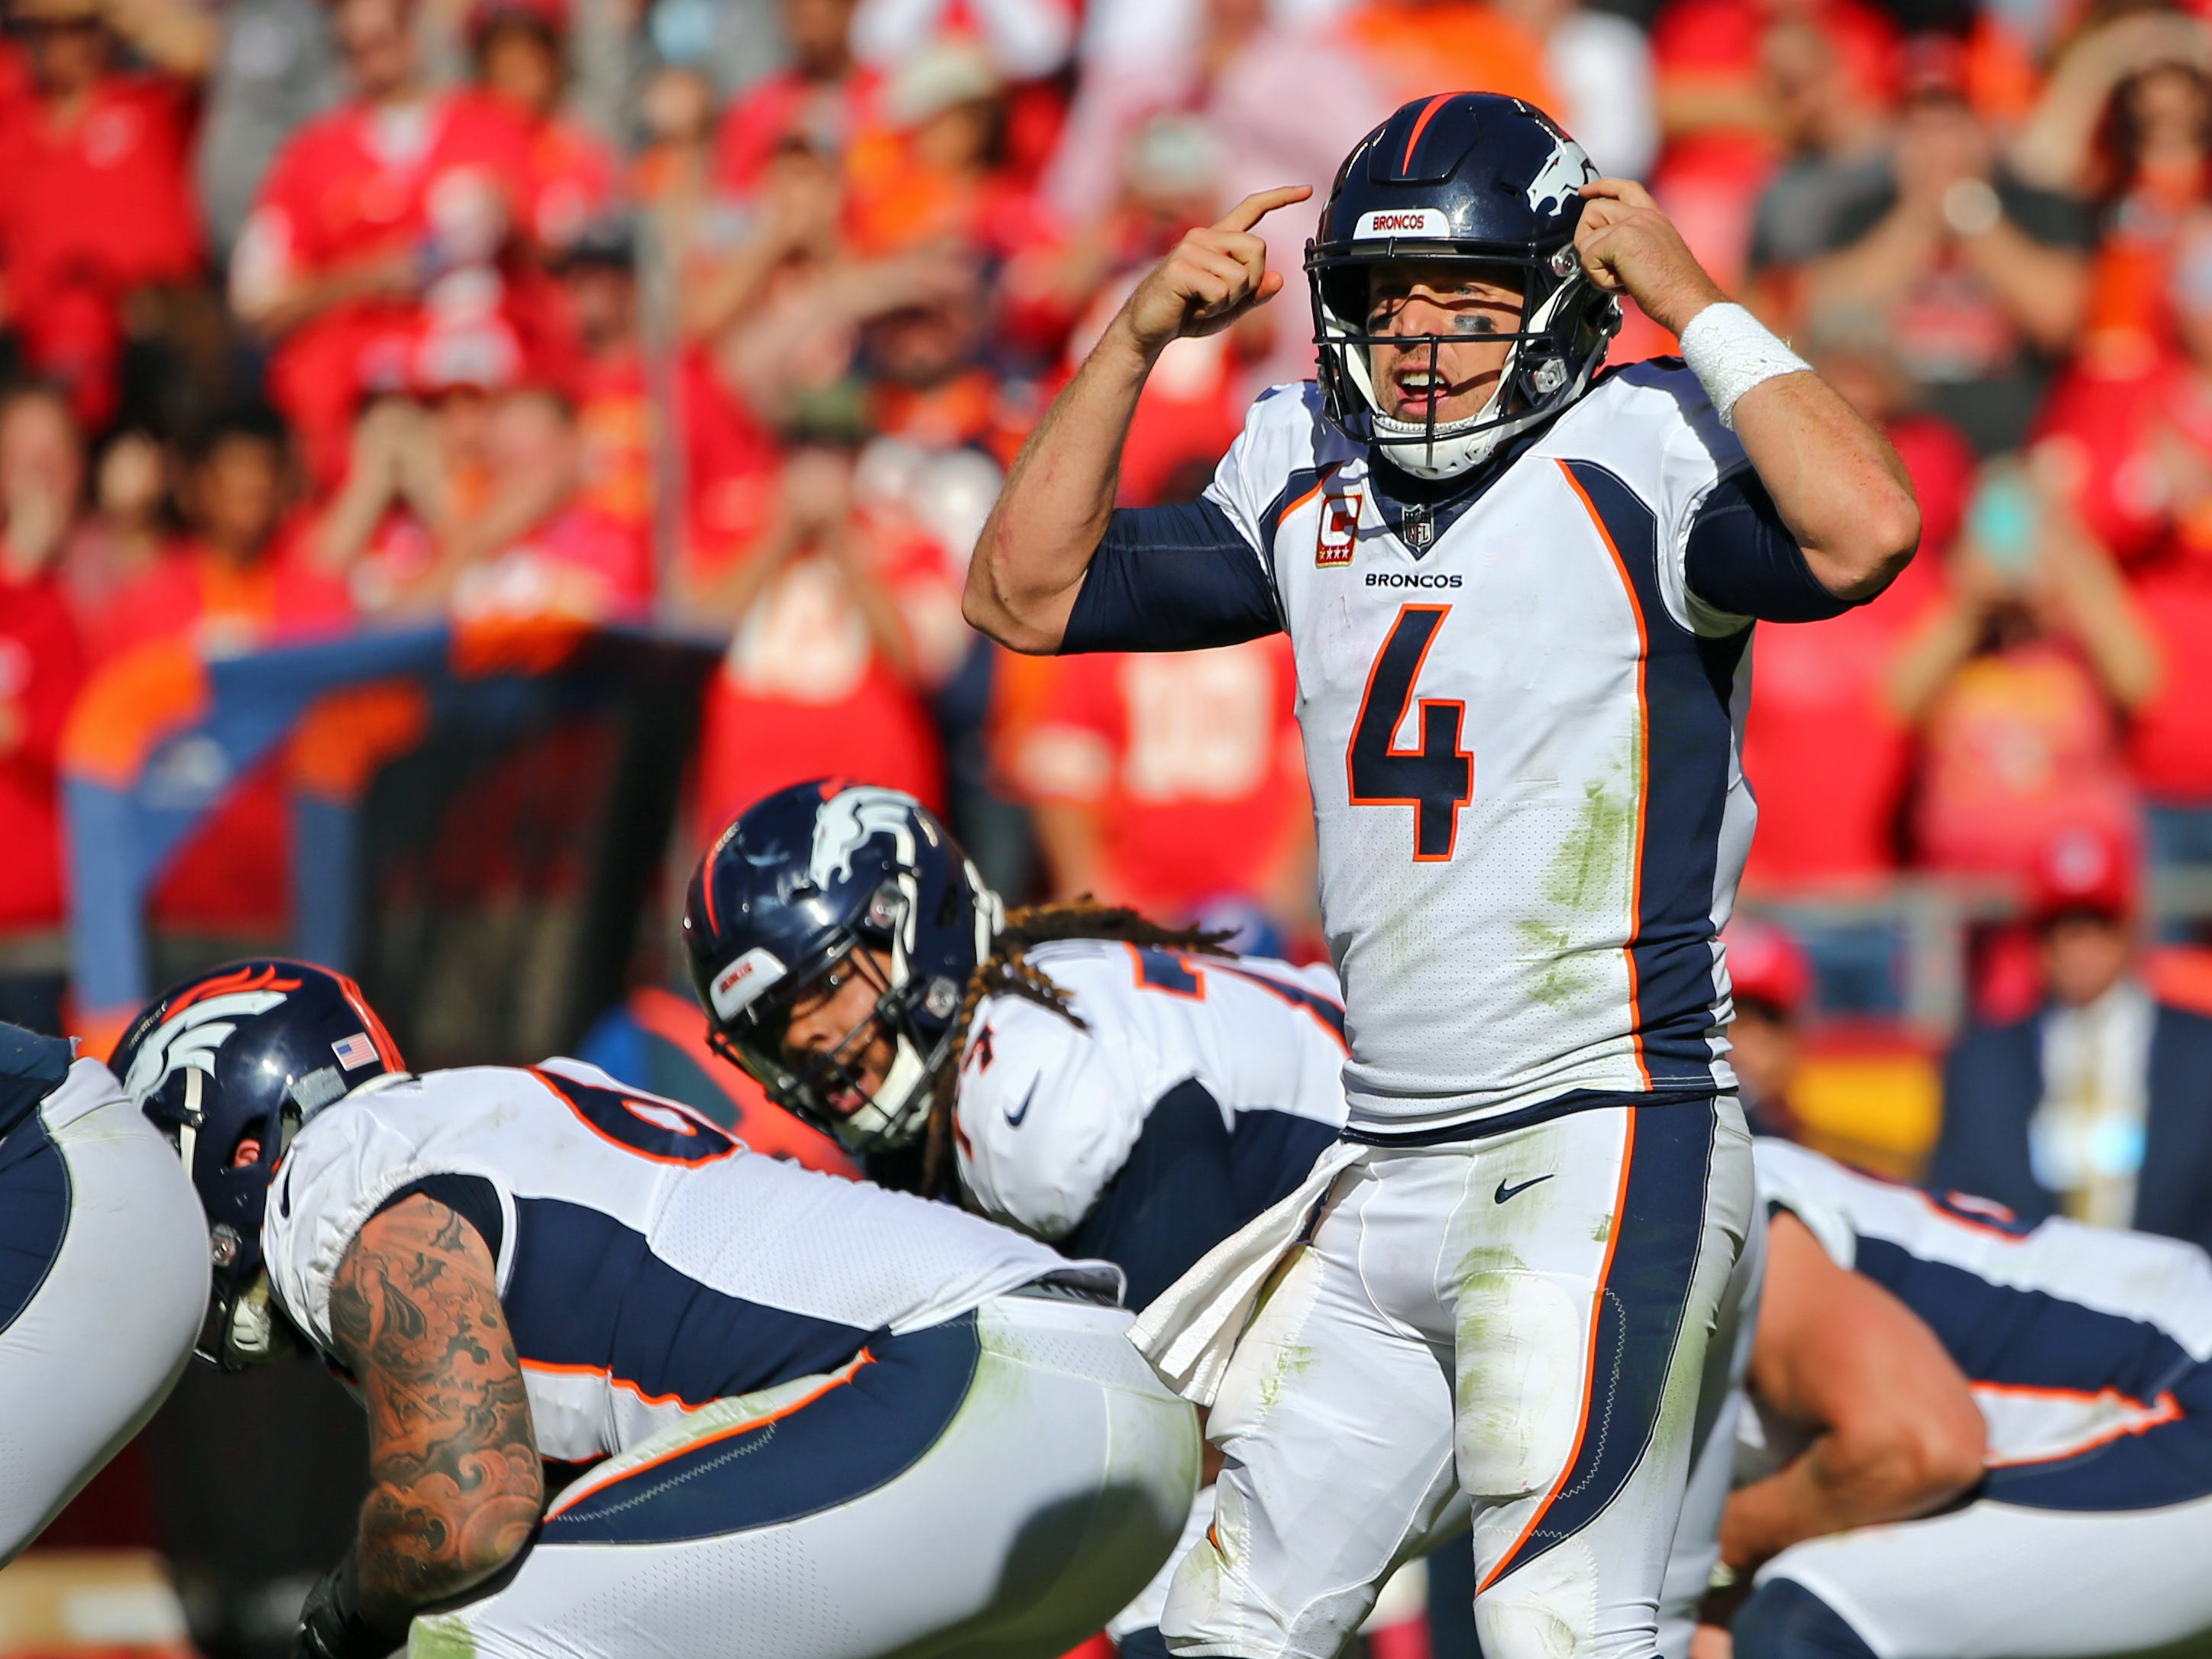 27. Broncos (26): Trick — we've harped on Case Keenum, who's thrown an INT in every game. But Denver hadn't lost a fumble ... until Keenum coughed one up Sunday.